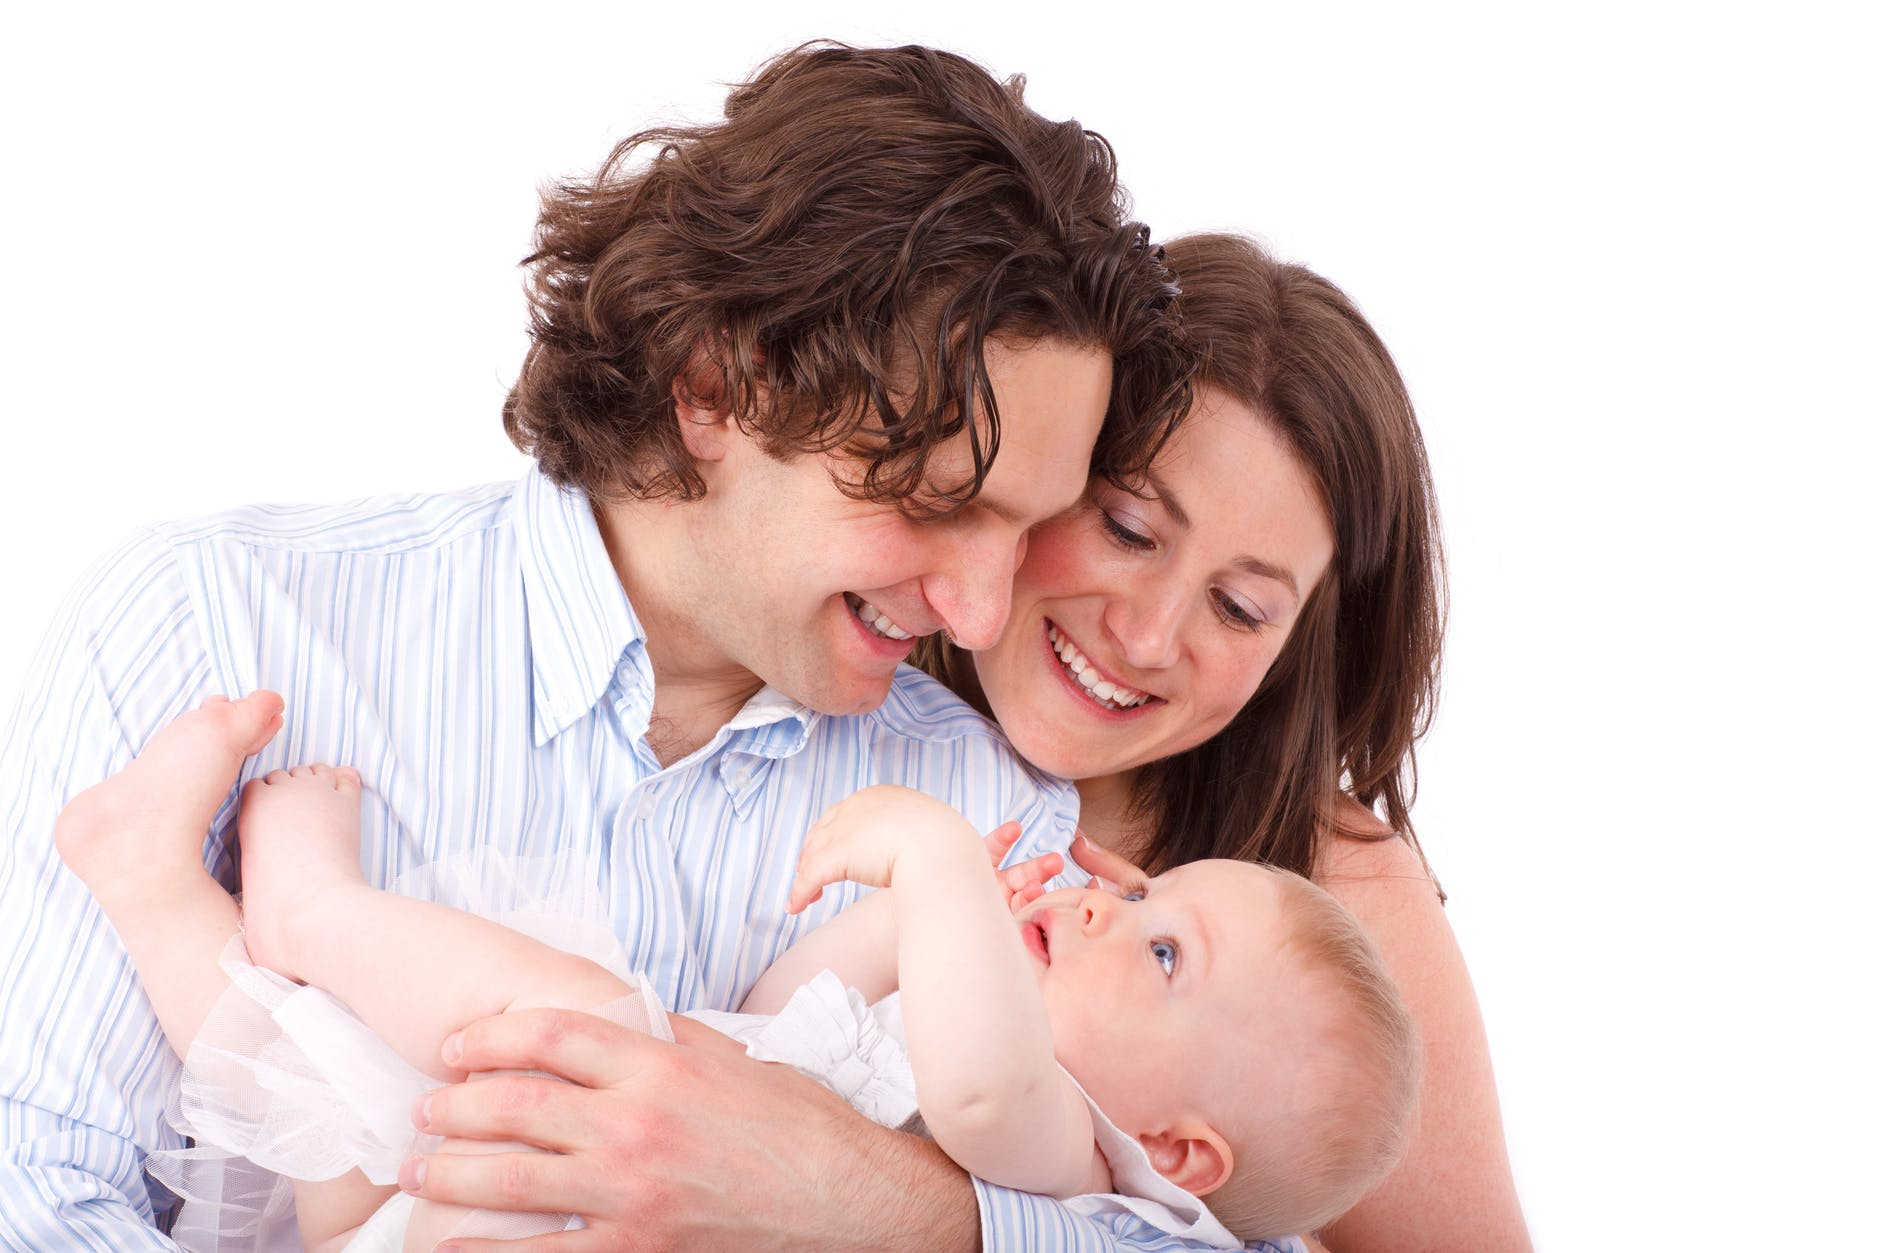 father holding infant child with mother resting her head on father's shoulder looking at baby